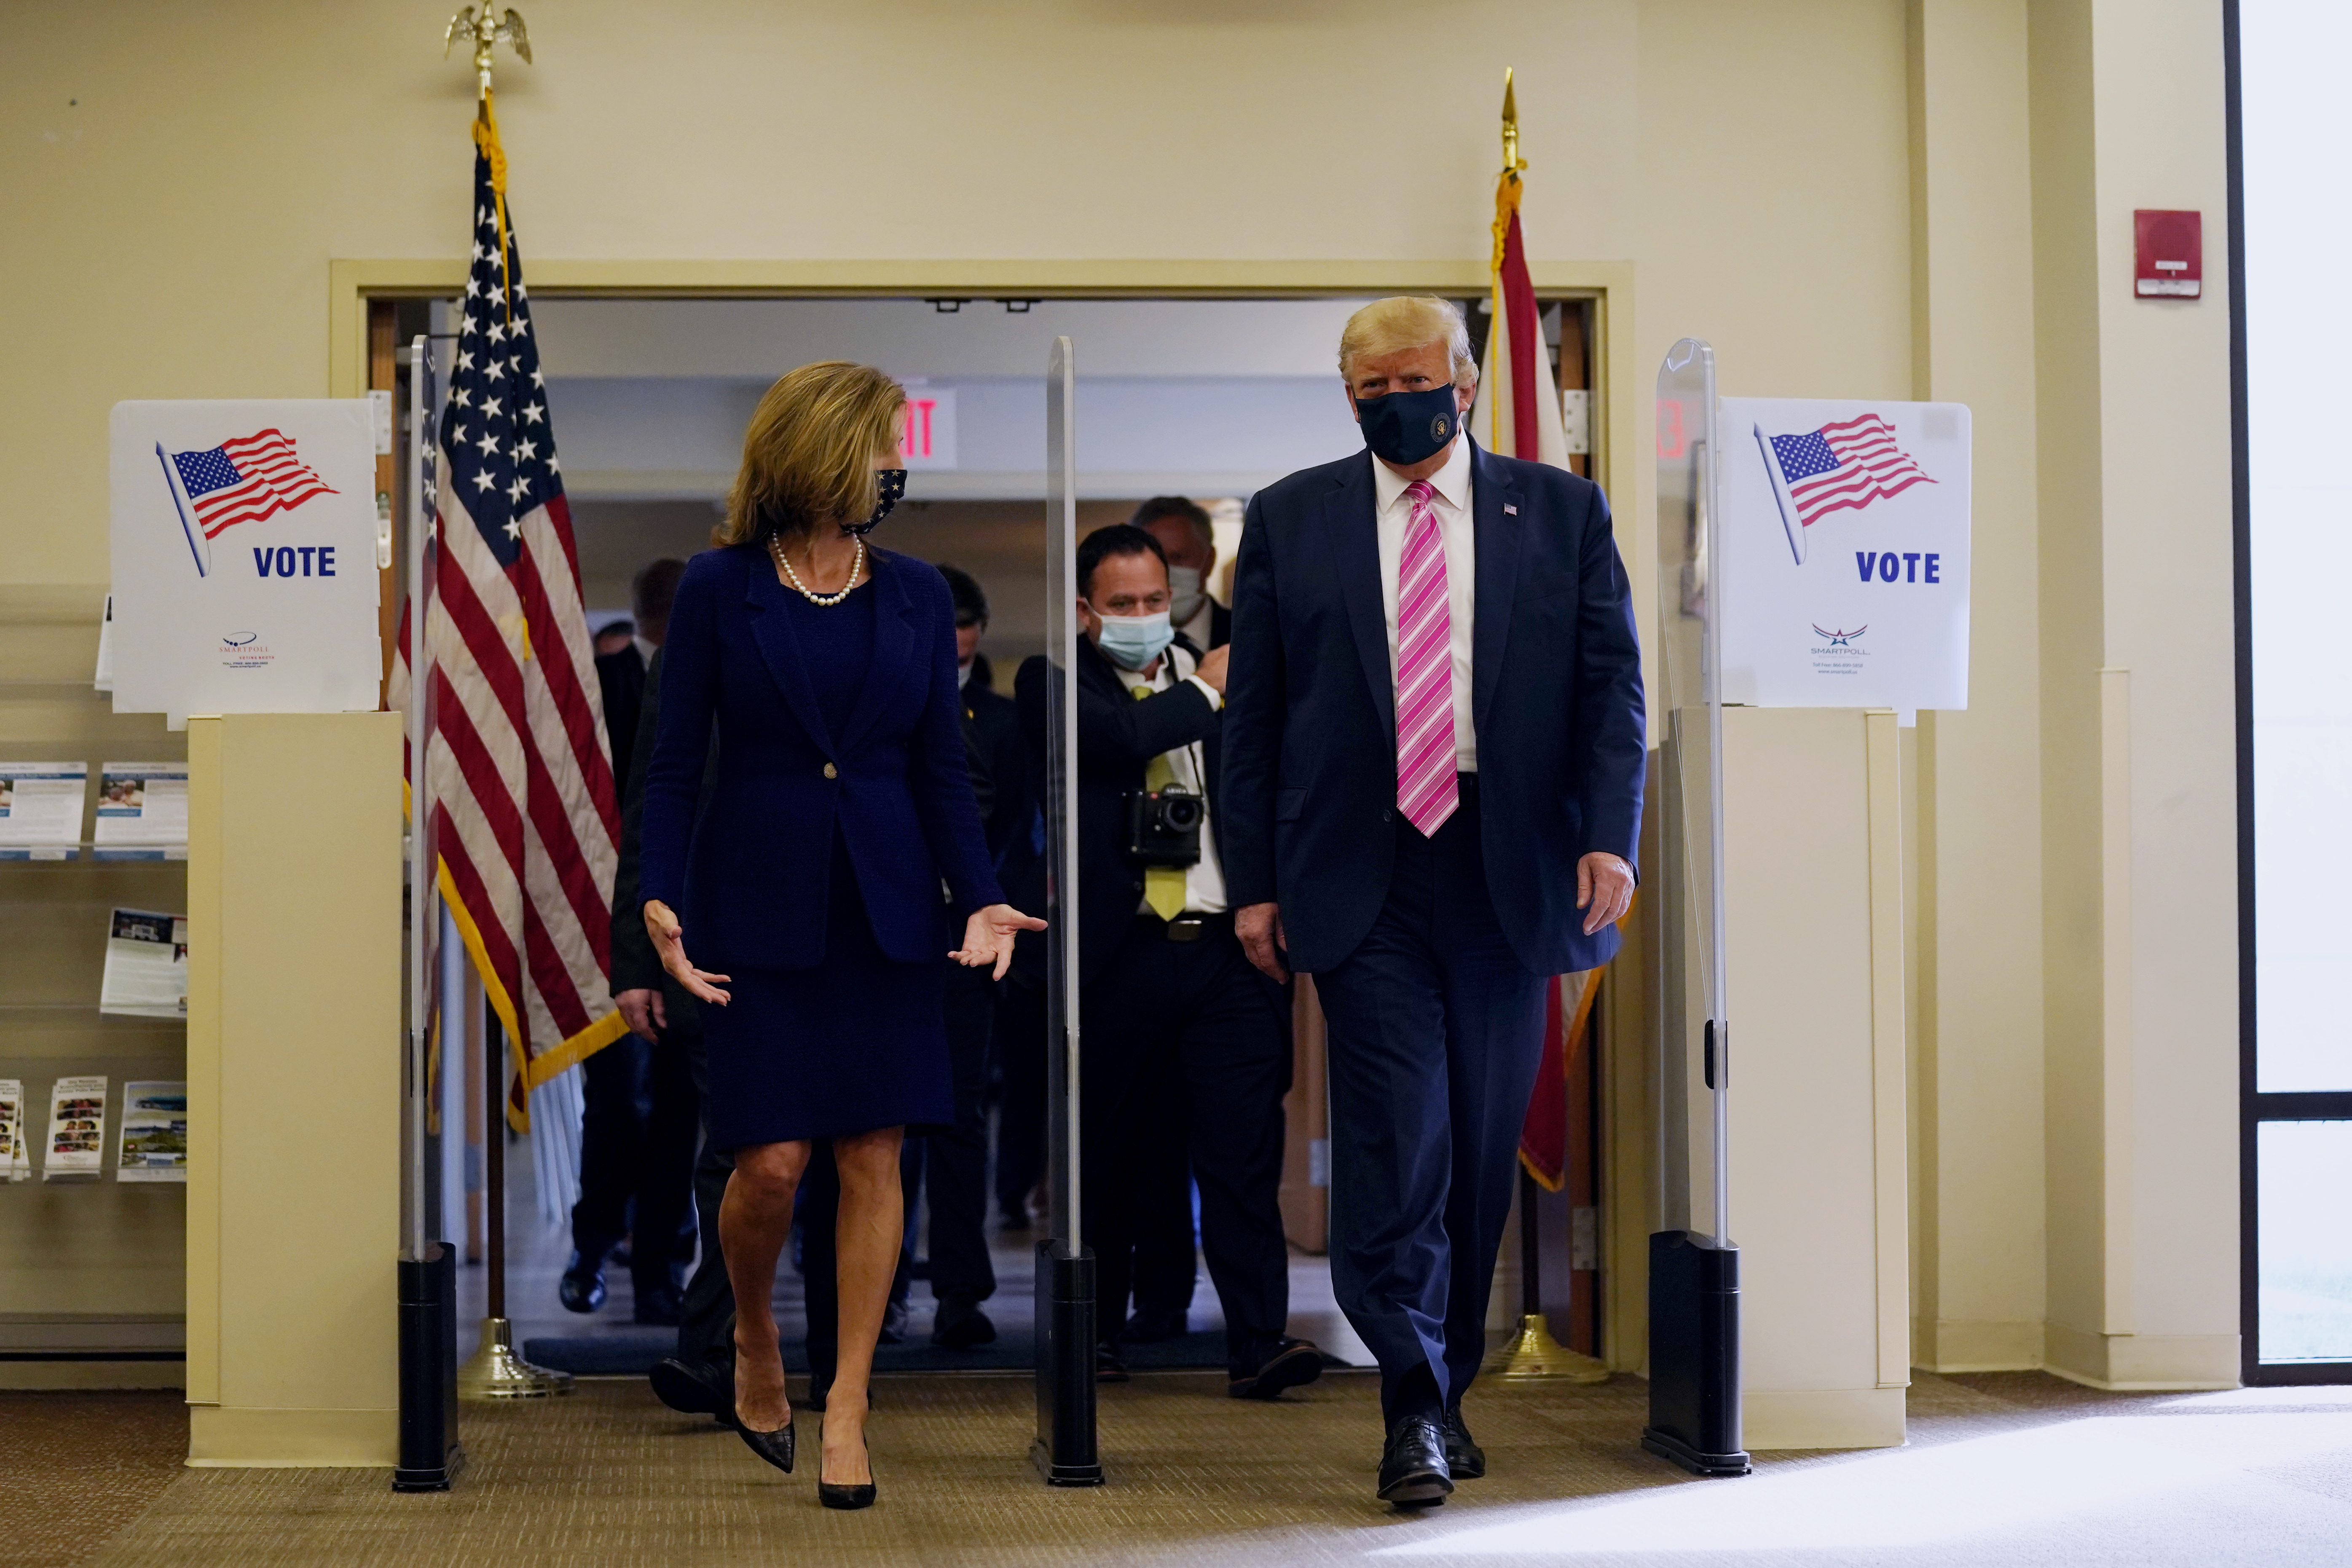 President Donald Trump walks with Wendy Sartory Link, Supervisor of Elections Palm Beach County, after casting his ballot for the presidential election in West Palm Beach, Fla., on on Oct. 24, 2020.